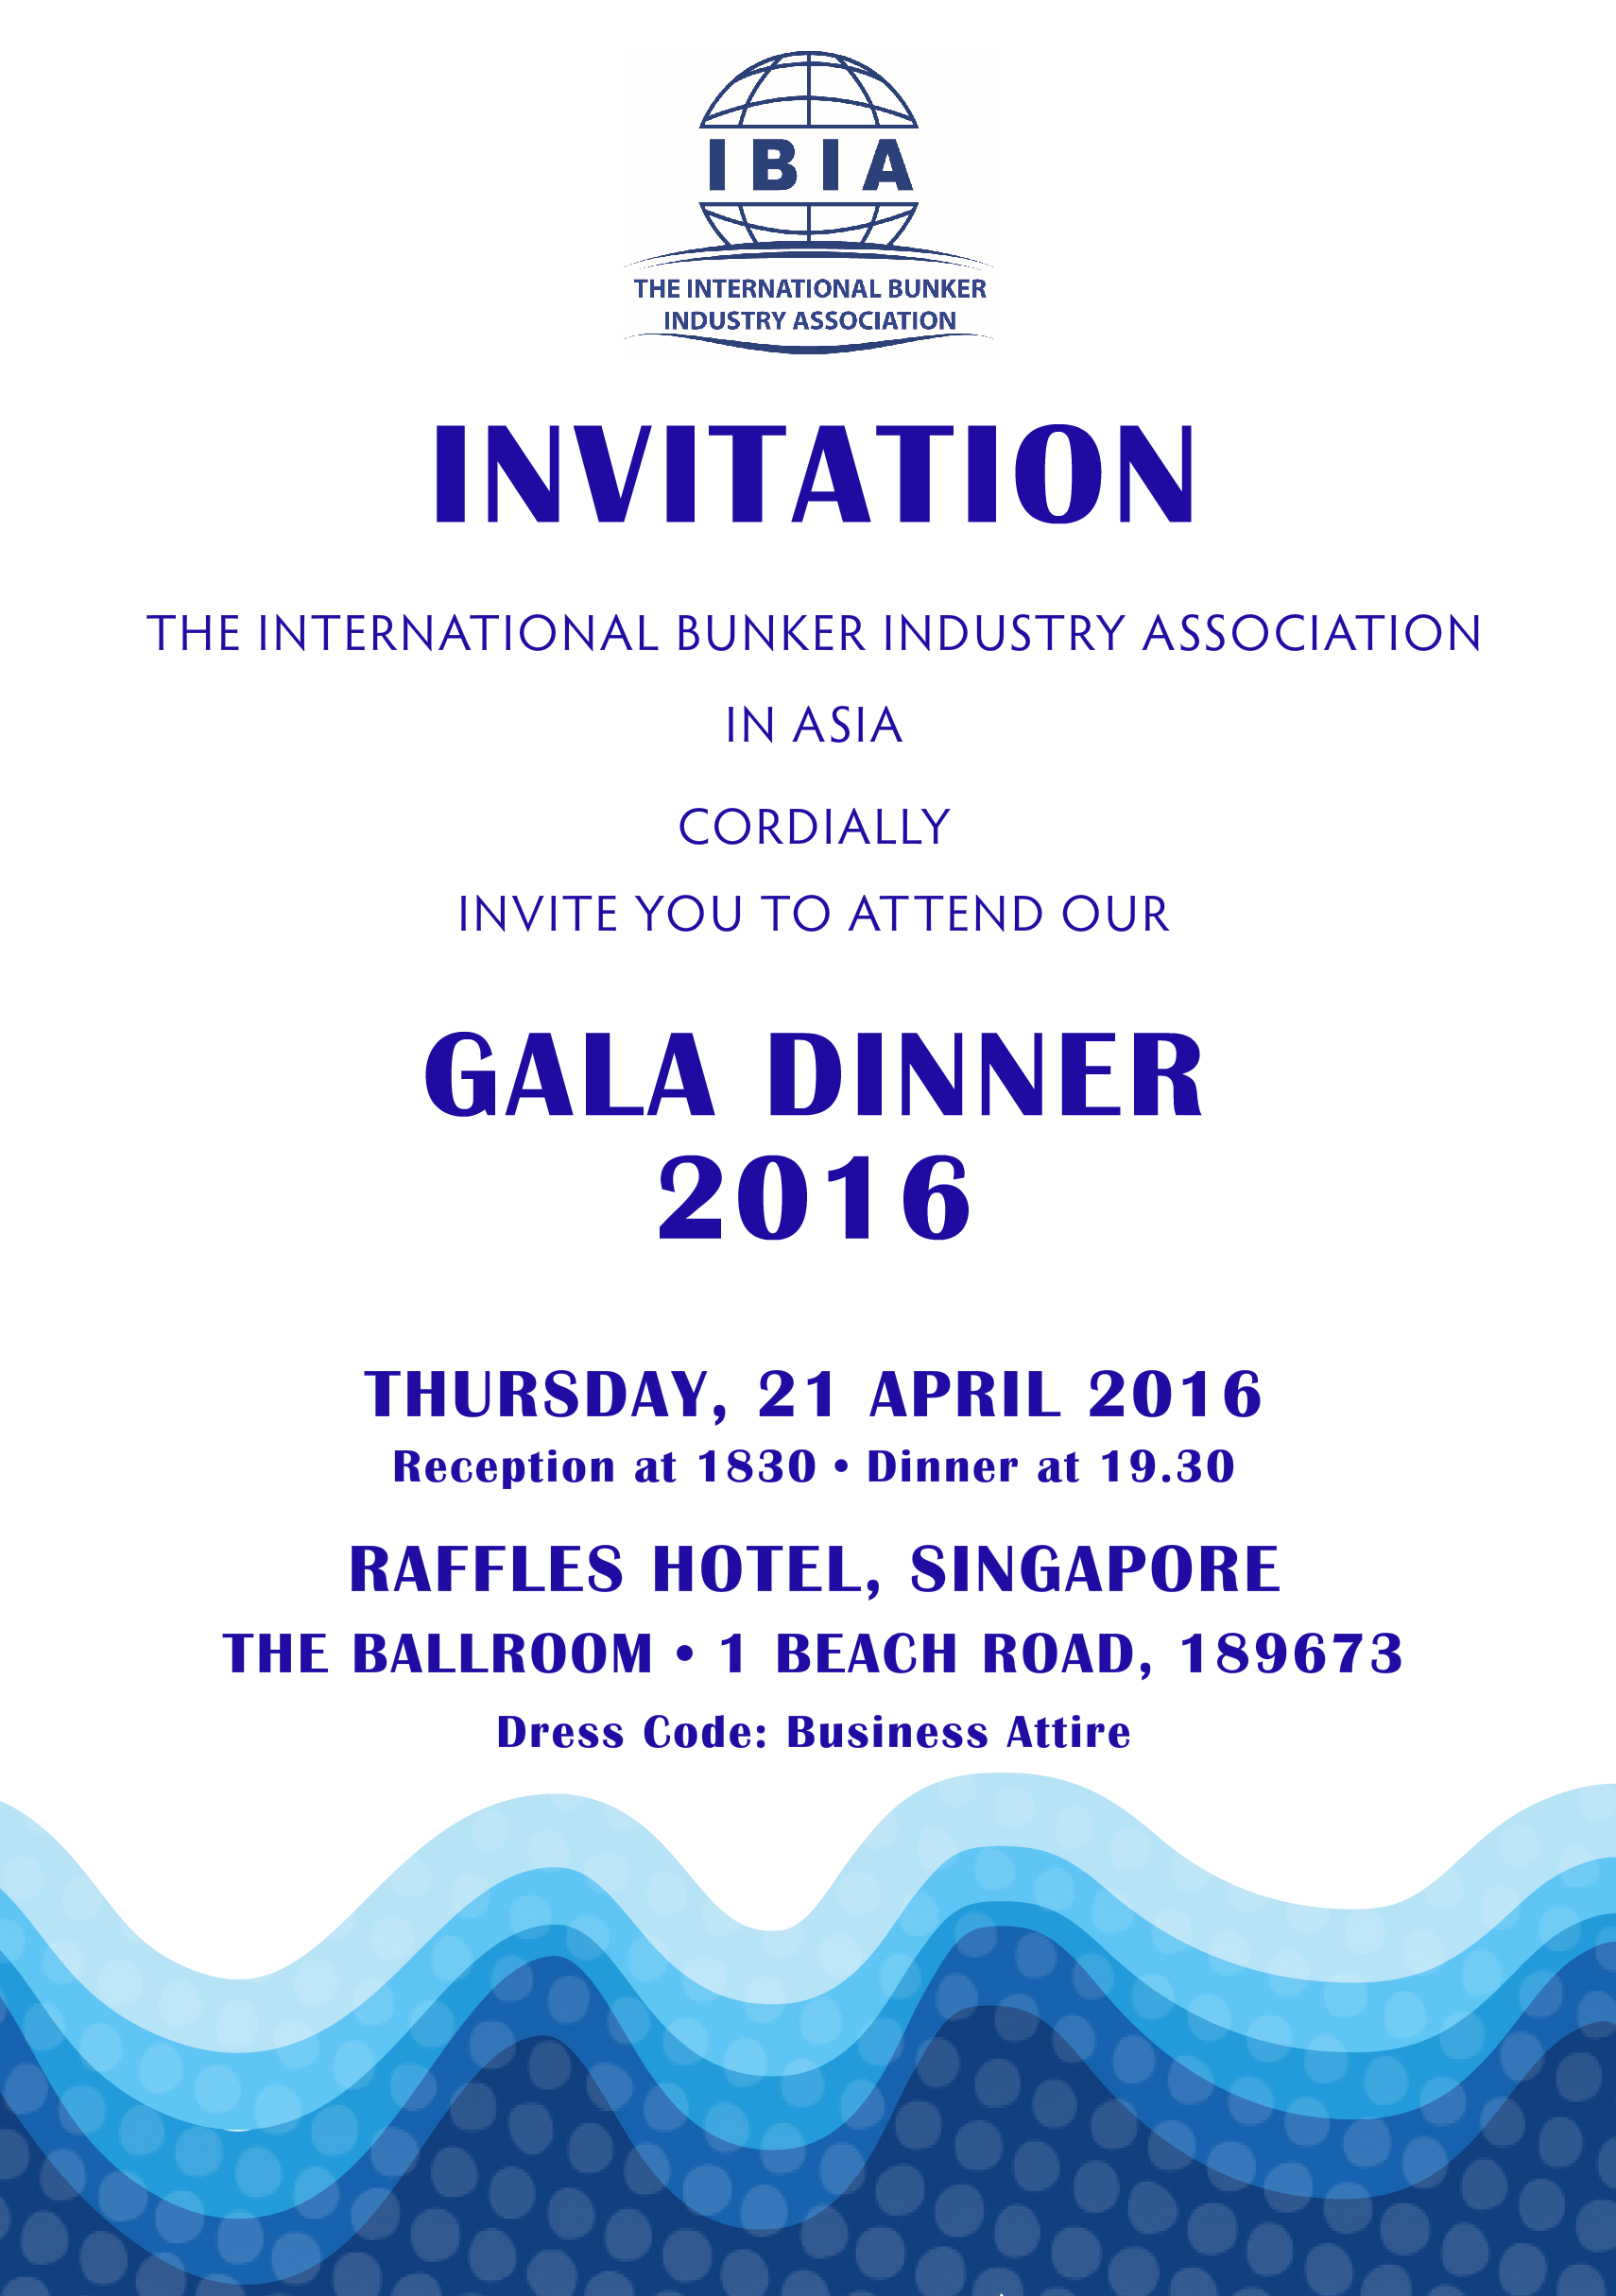 Ibia in asia gala dinner 2016 invitation card ibia in asia gala ibia in asia gala dinner 2016 invitation card ibia in asia gala dinner 2016 stopboris Image collections